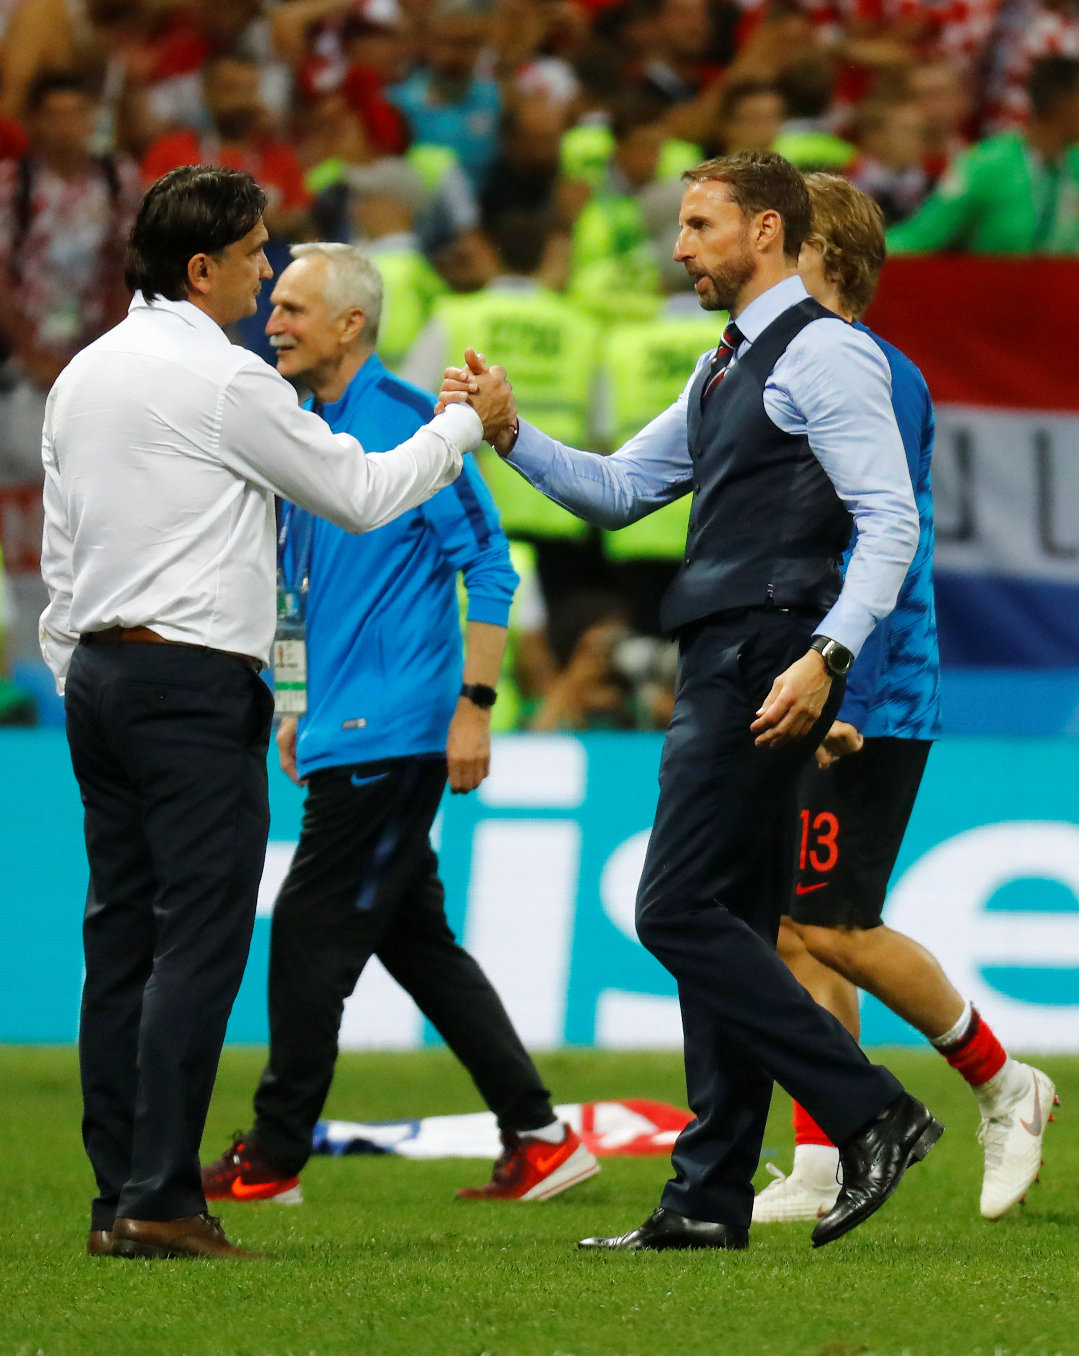 2018-07-11T204956Z_1114880221_RC1ED9A6CCE0_RTRMADP_3_SOCCER-WORLDCUP-CRO-ENG